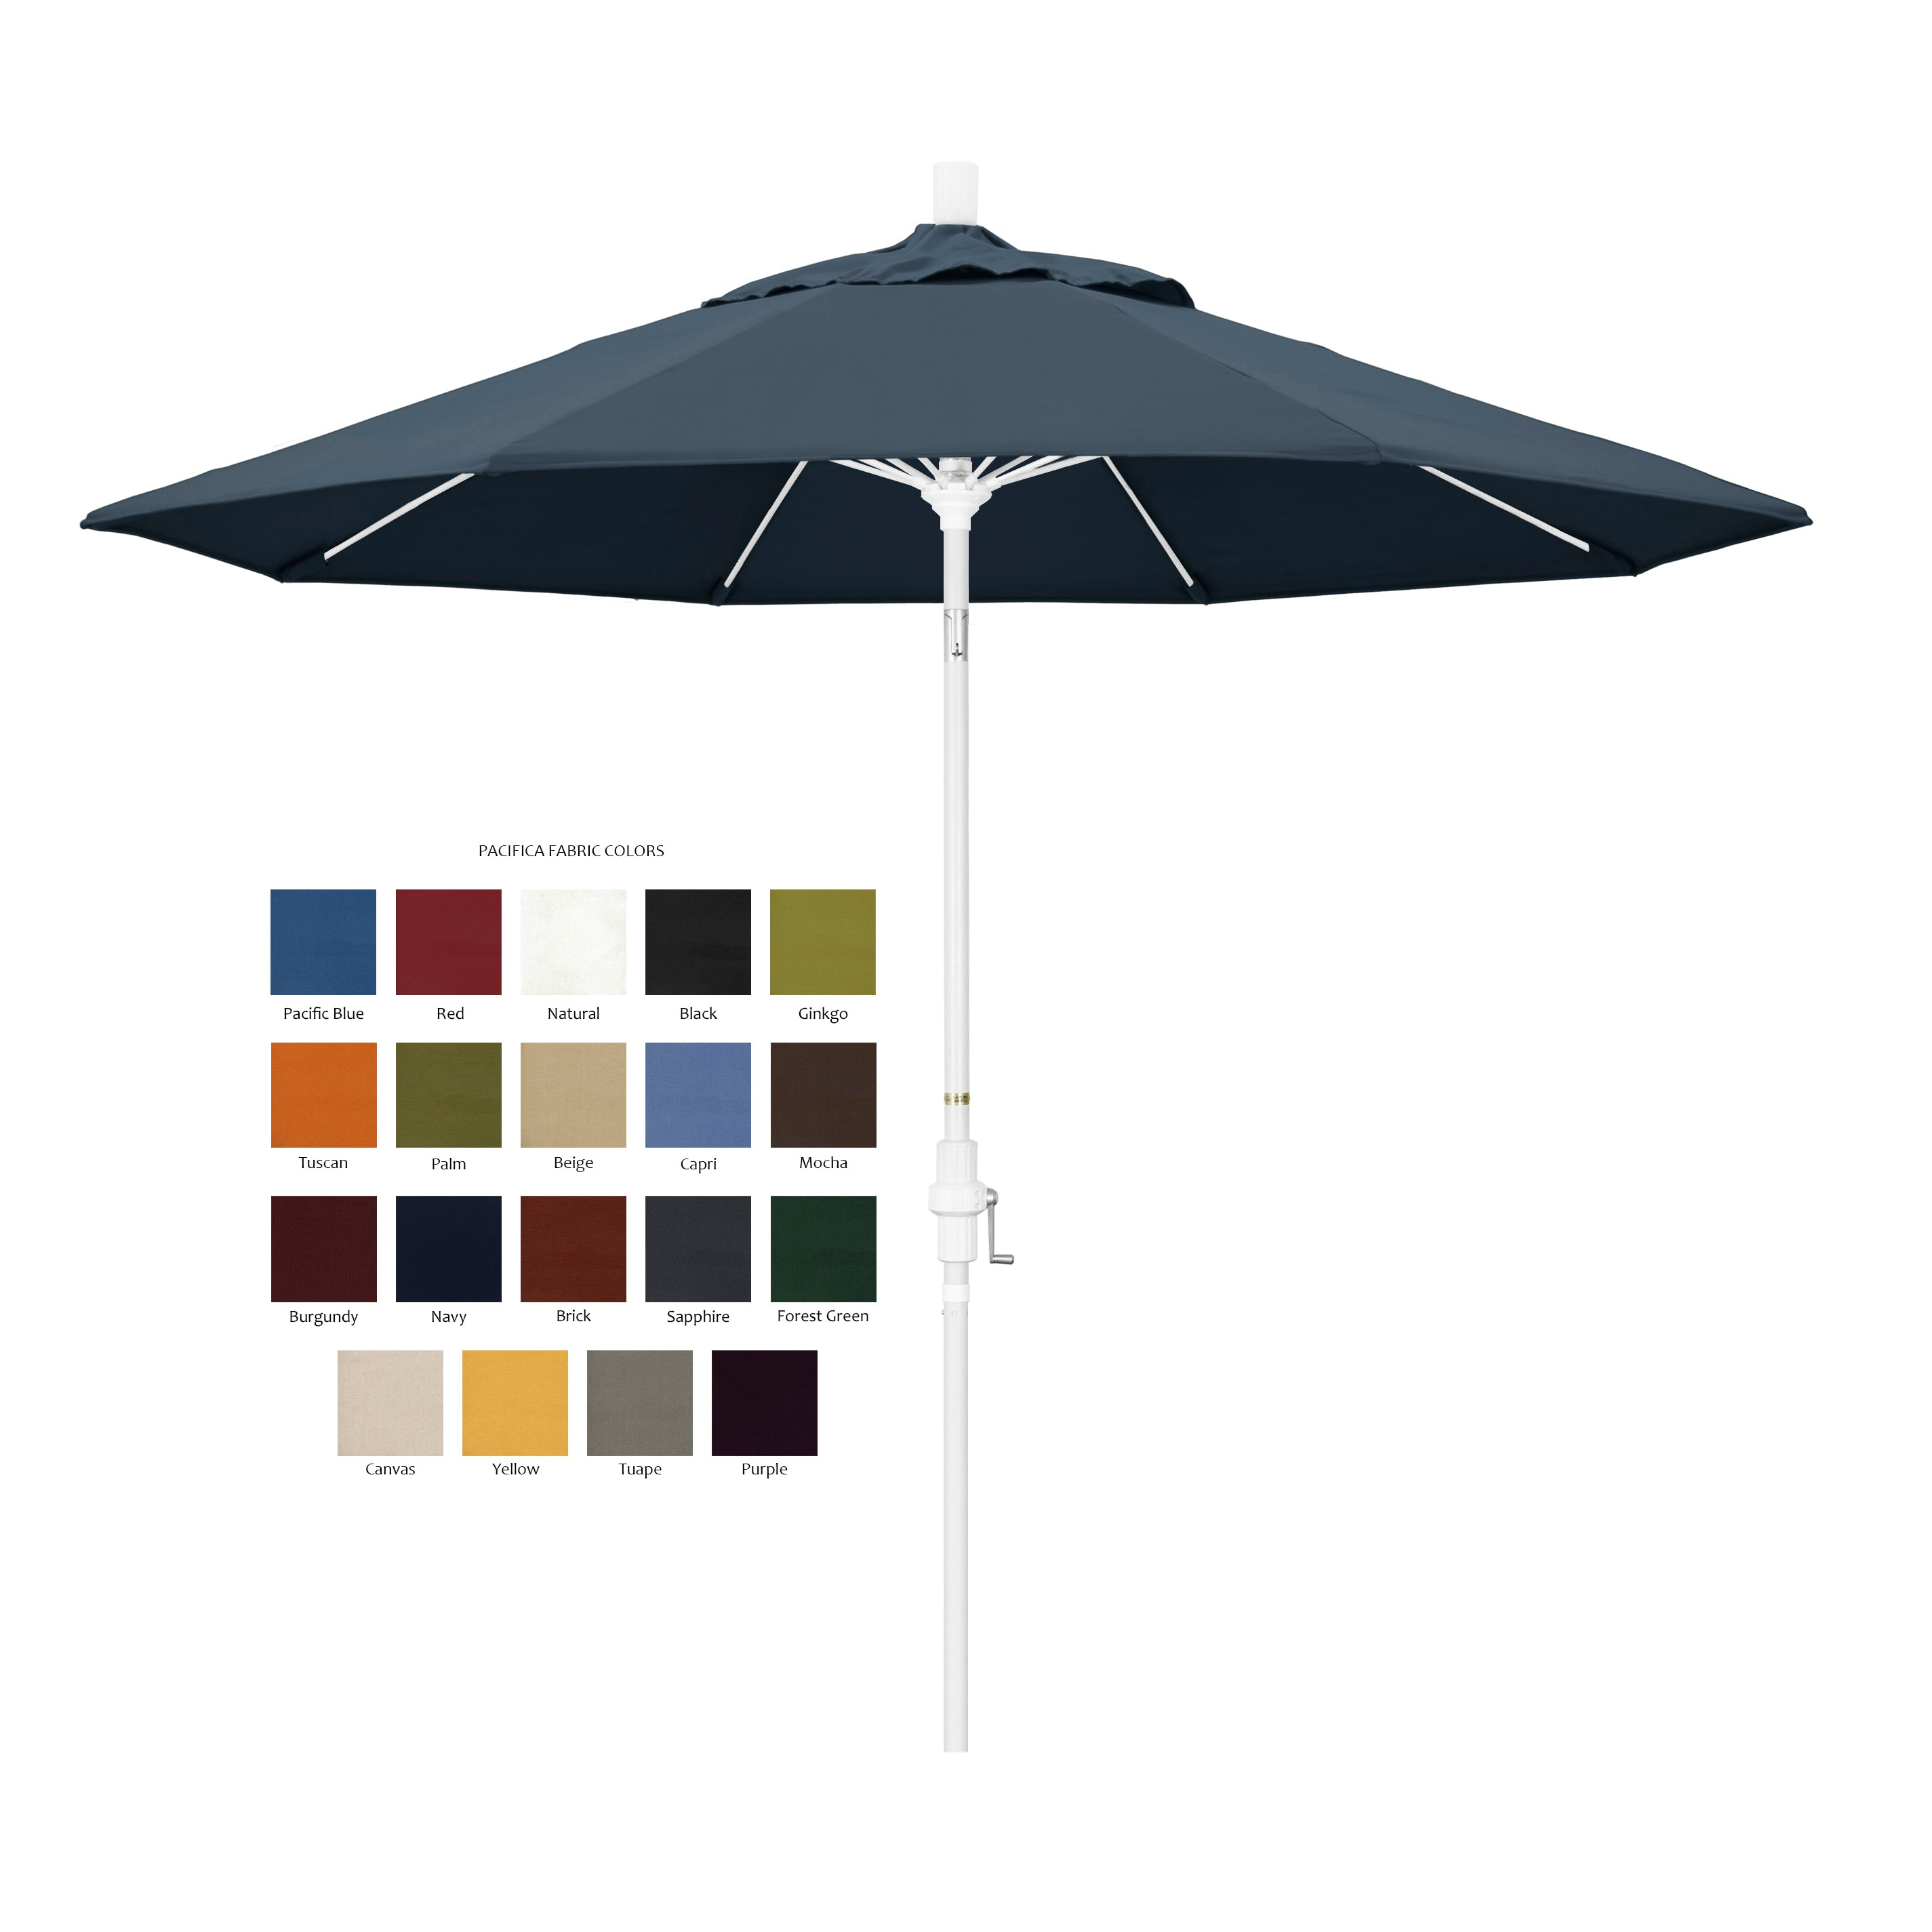 California 9 Patio Umbrella With Crank Lift And Collar Tilt With Pacifica Fabric And Matted White Pole